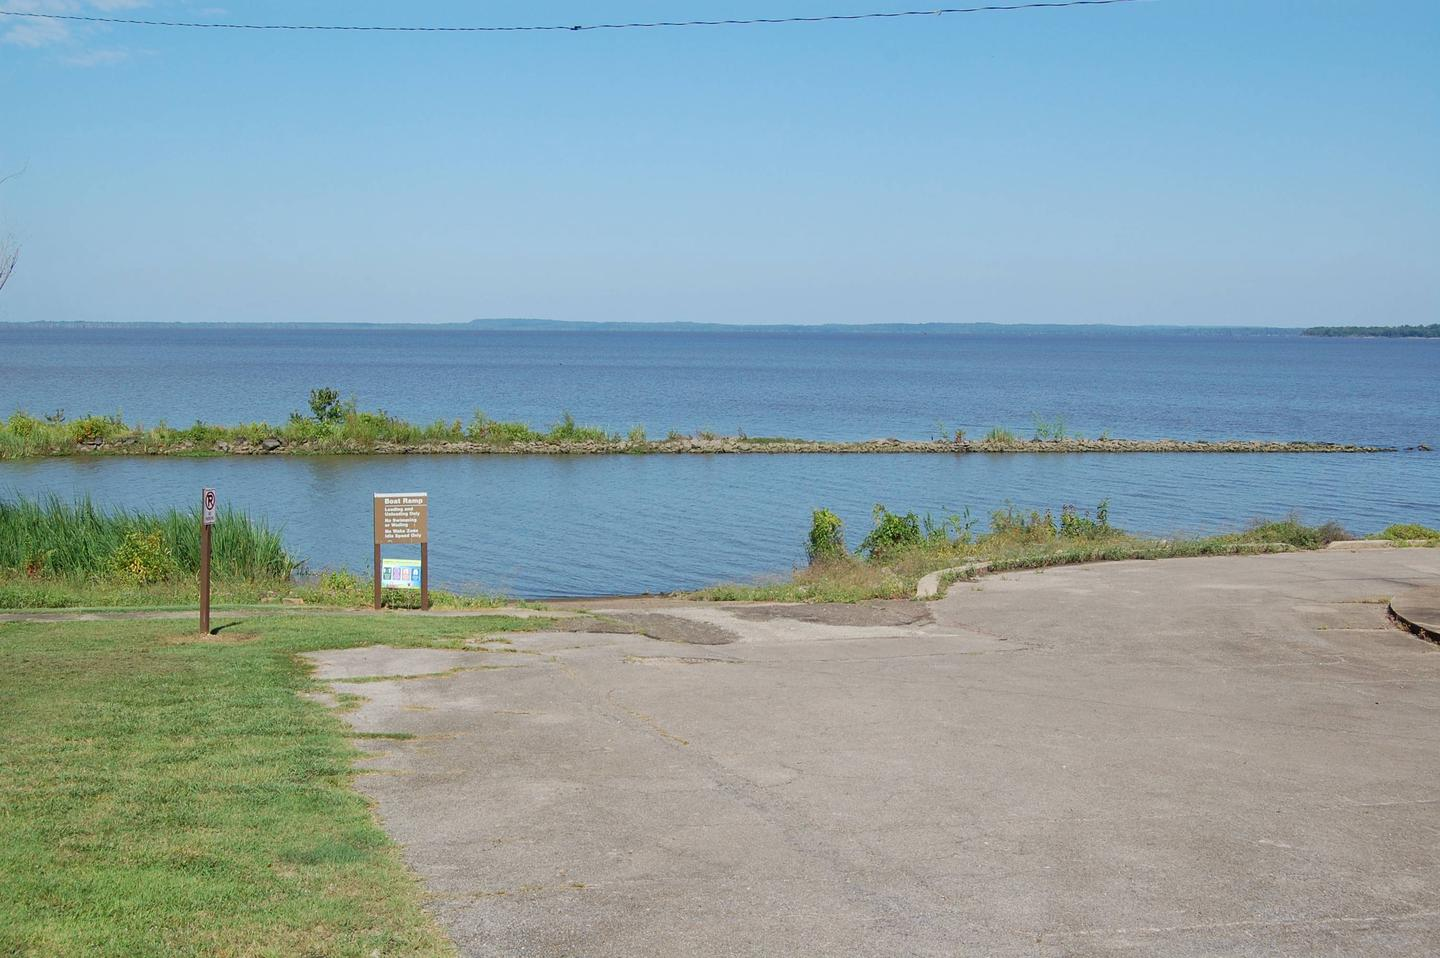 North Boat Ramp